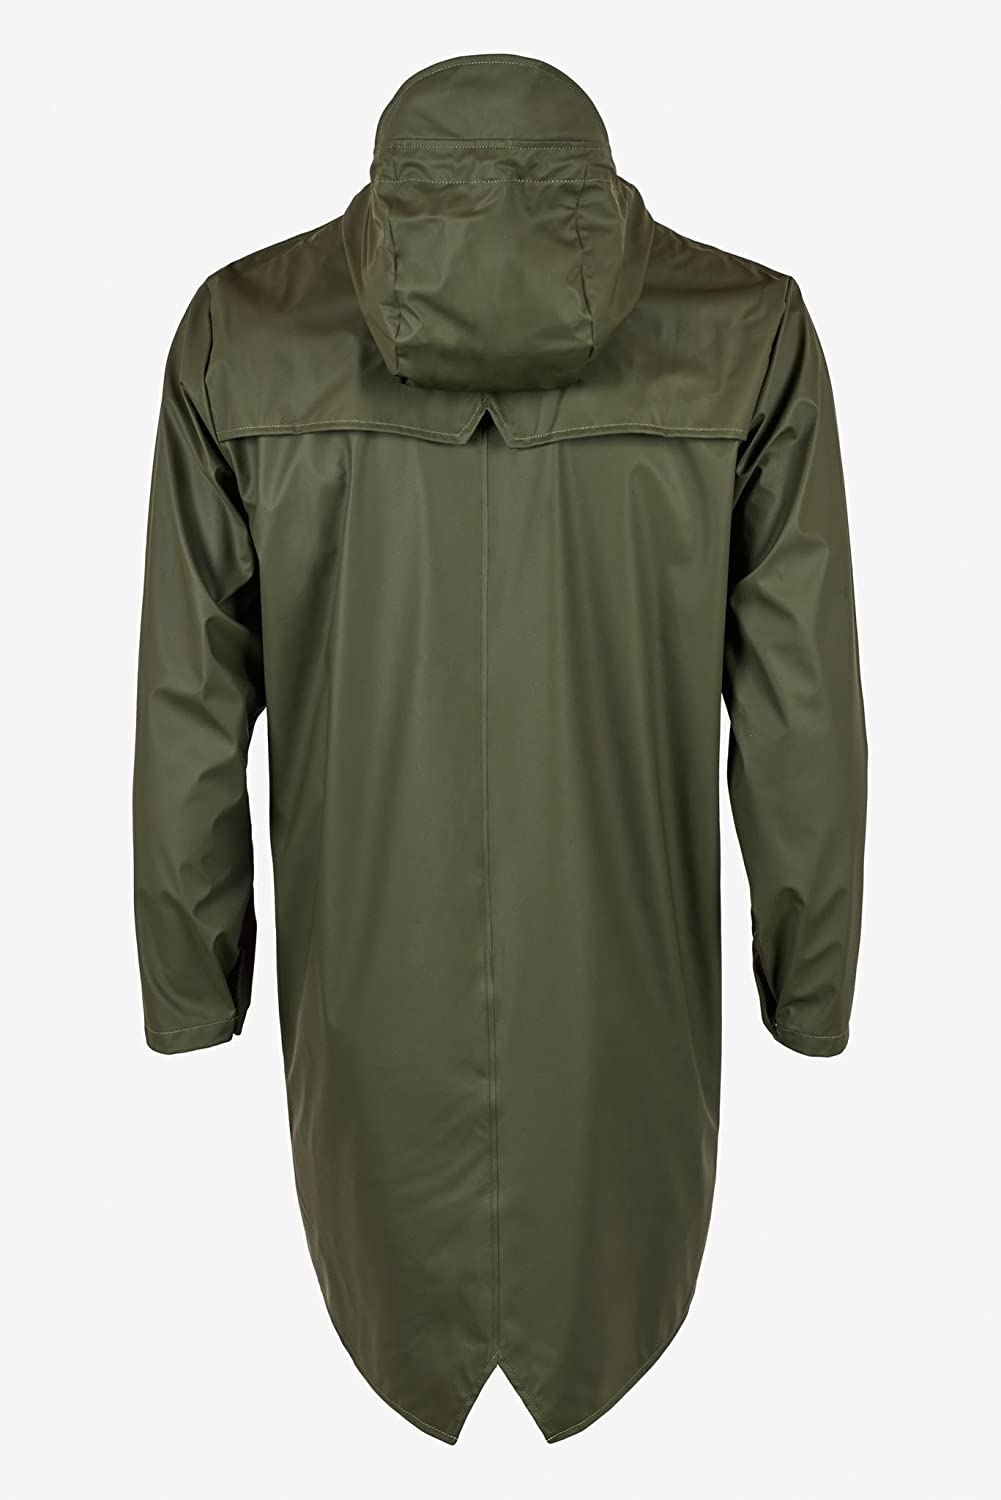 RAINS Mens Long Jacket Raincoat